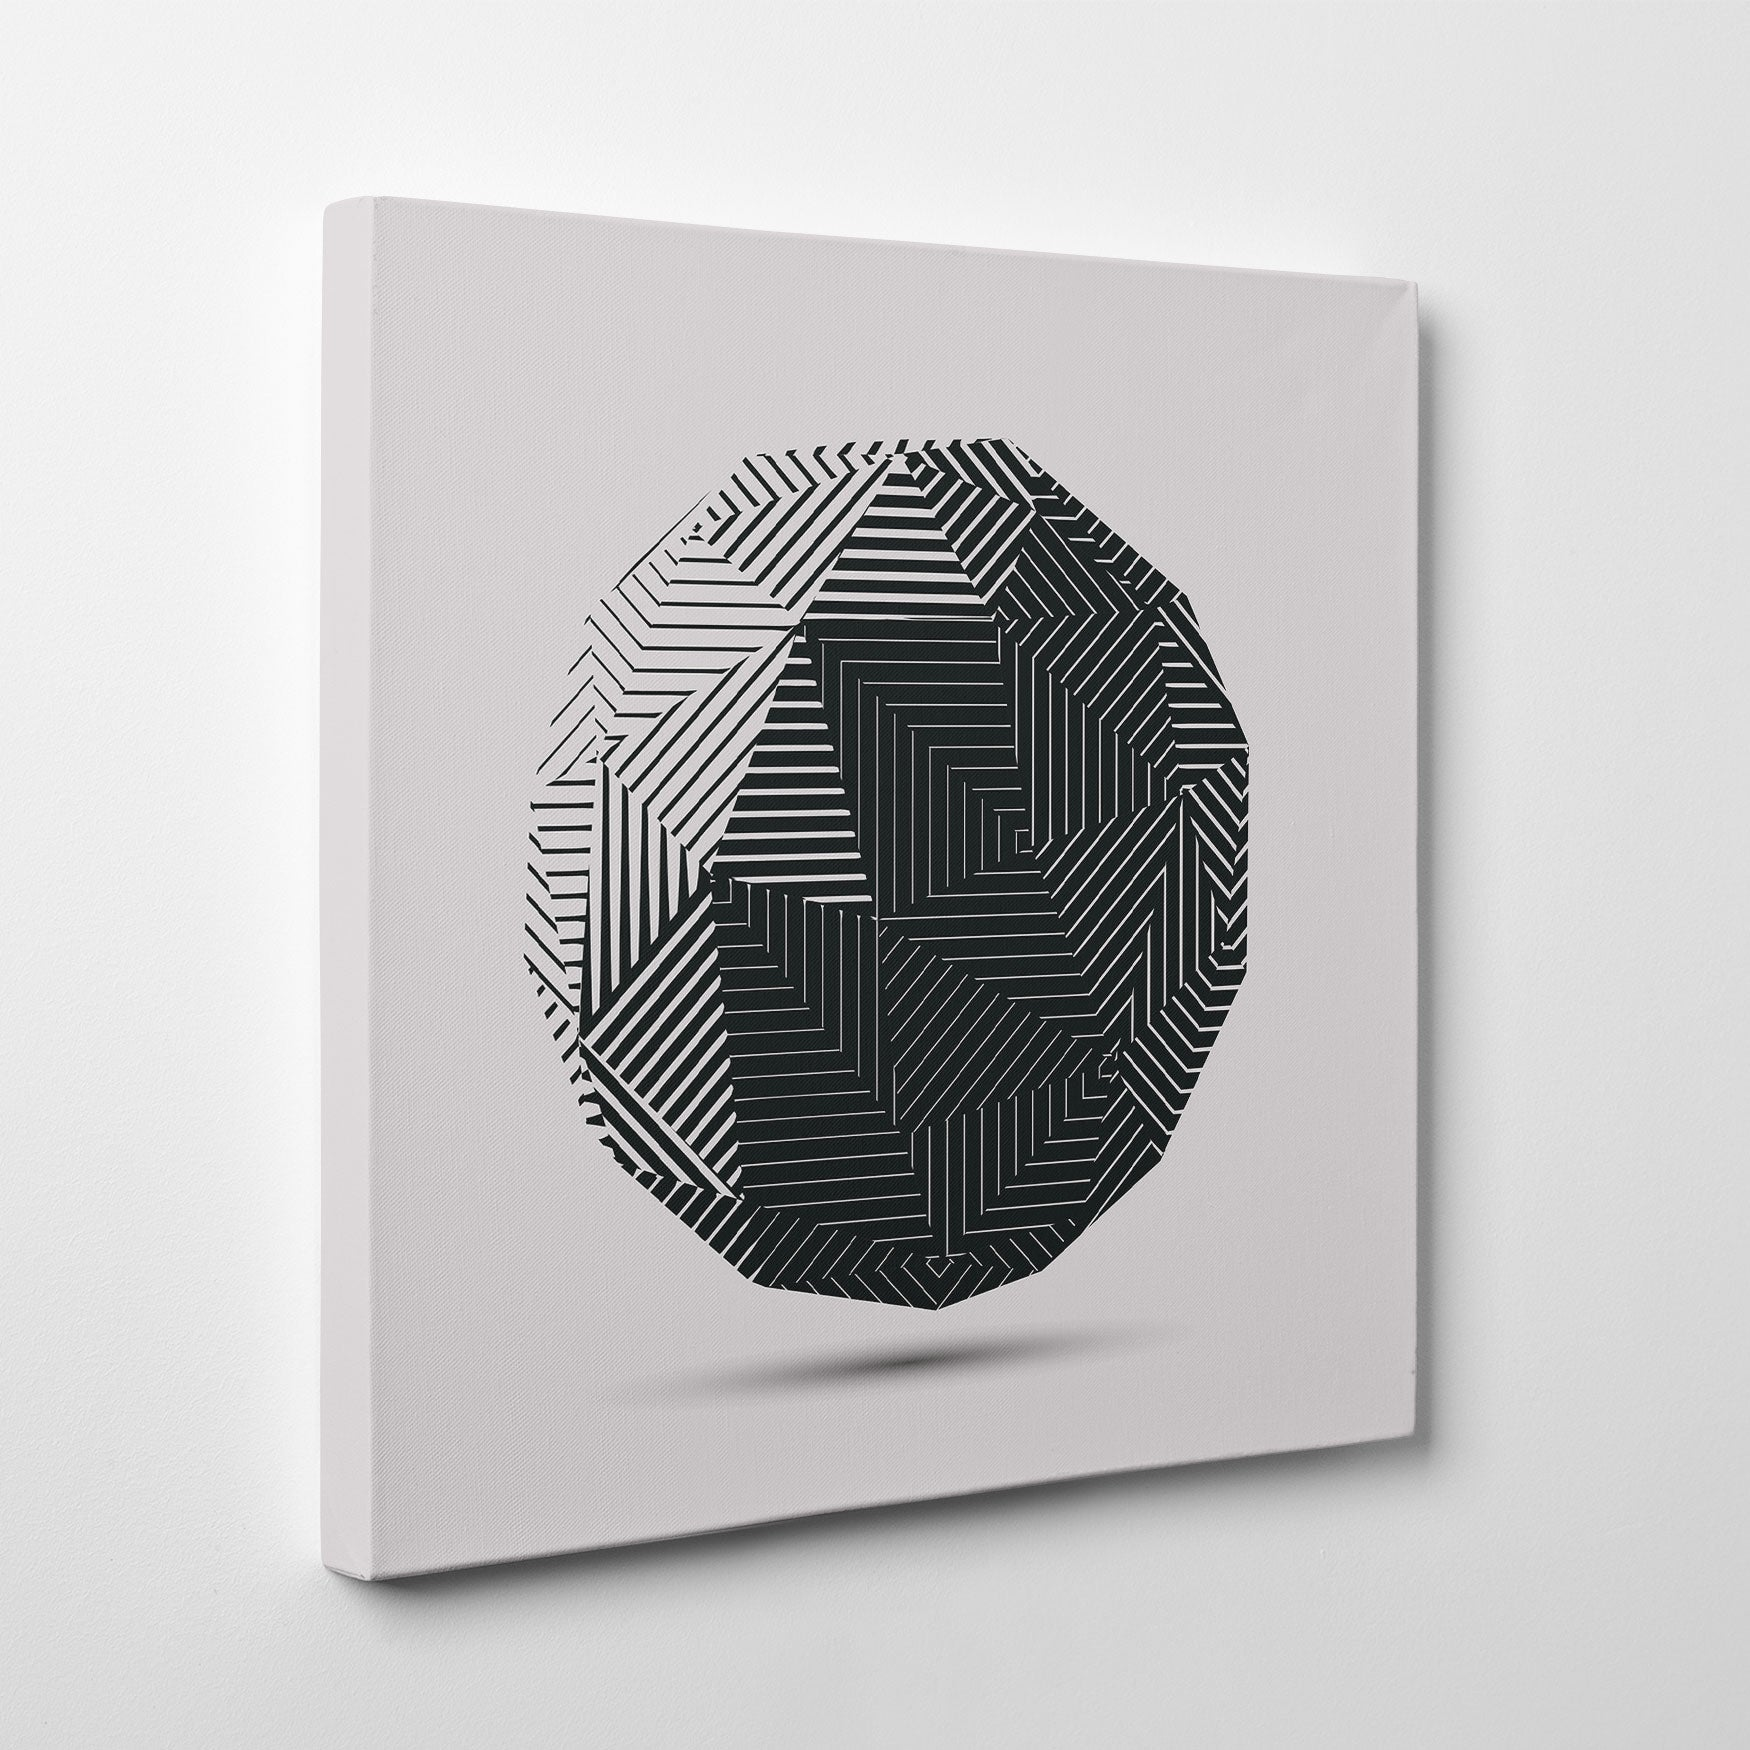 Geometric poster print 3D dark grey ball, on light grey background. Minimalist art print for a stylish interior. Discover our Geometric Premium Poster Prints Collection and create your own wall art gallery - side view